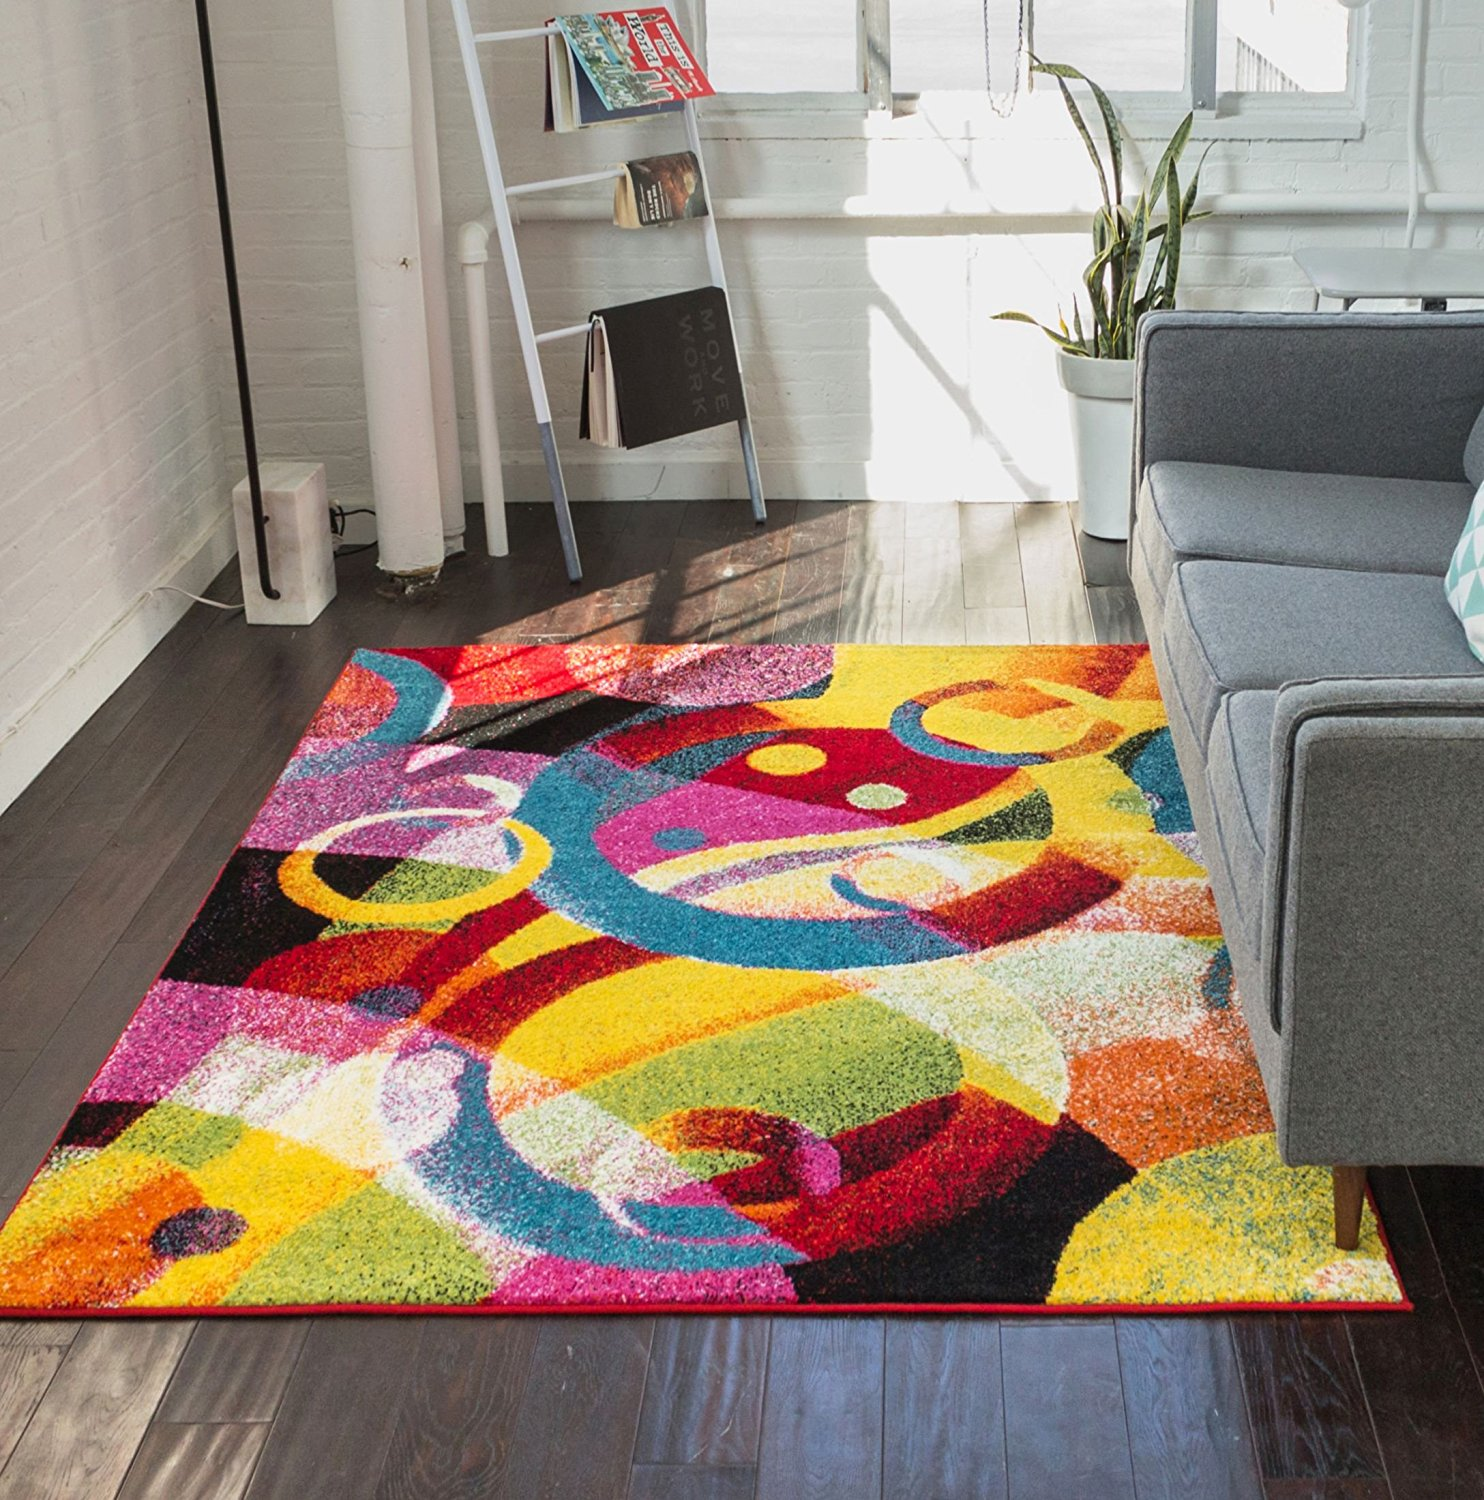 Colorful Rugs (20)